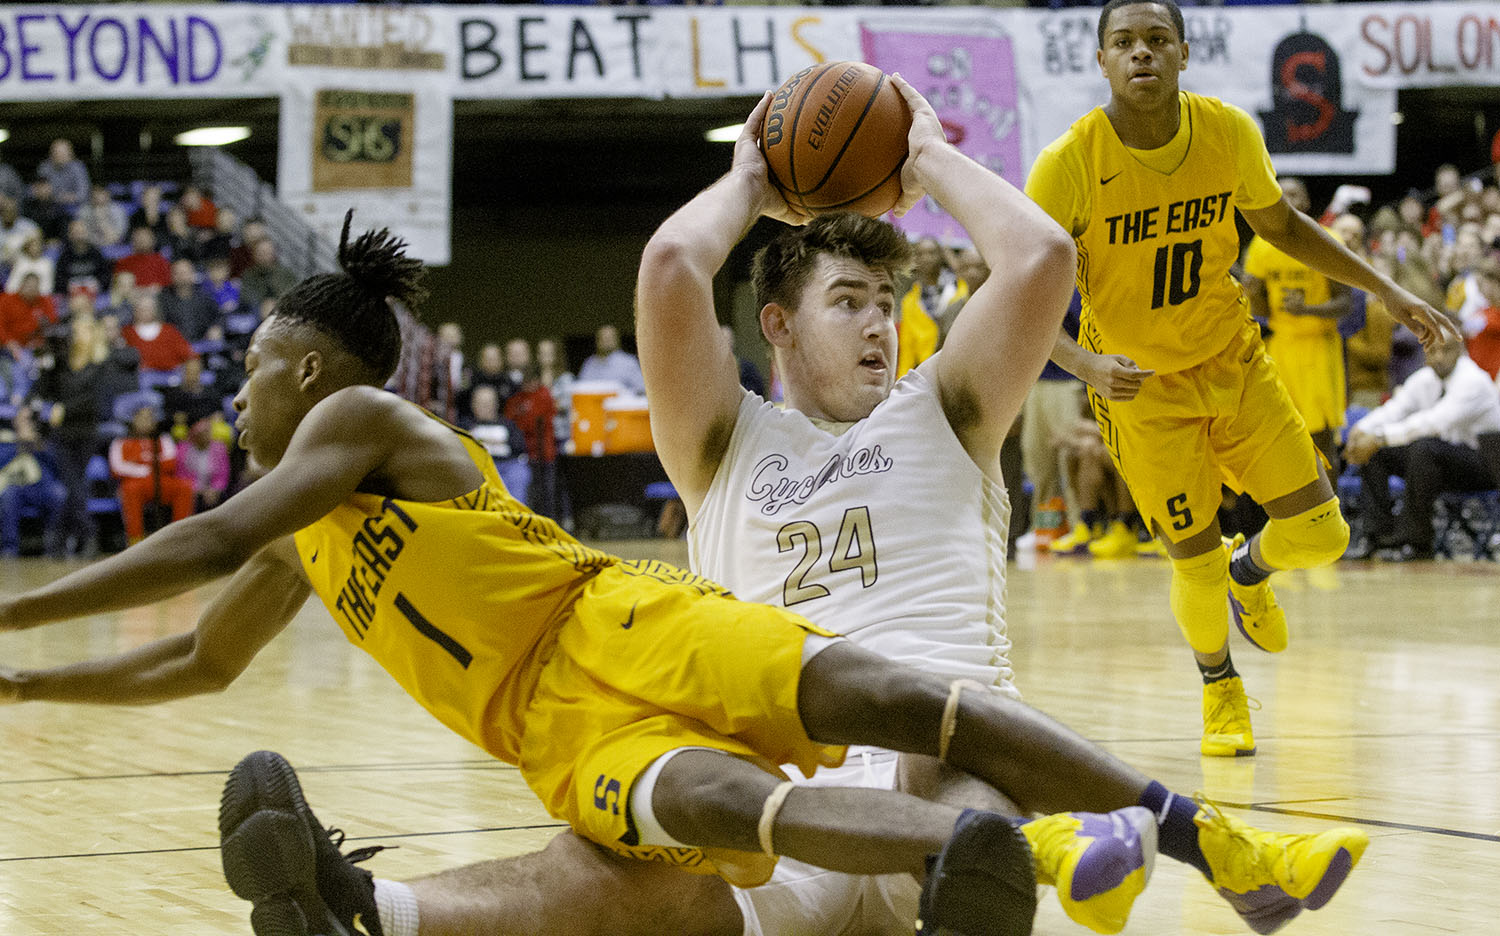 Sacred Heart-Griffin's Nick Broeker passes the ball after grabbing it off the floor as Southeast's Stepheon Sims dives over him during the Boys City Tournament at the Bank of Springfield Center Friday, Jan. 18, 2019.  [Ted Schurter/The State Journal-Register]